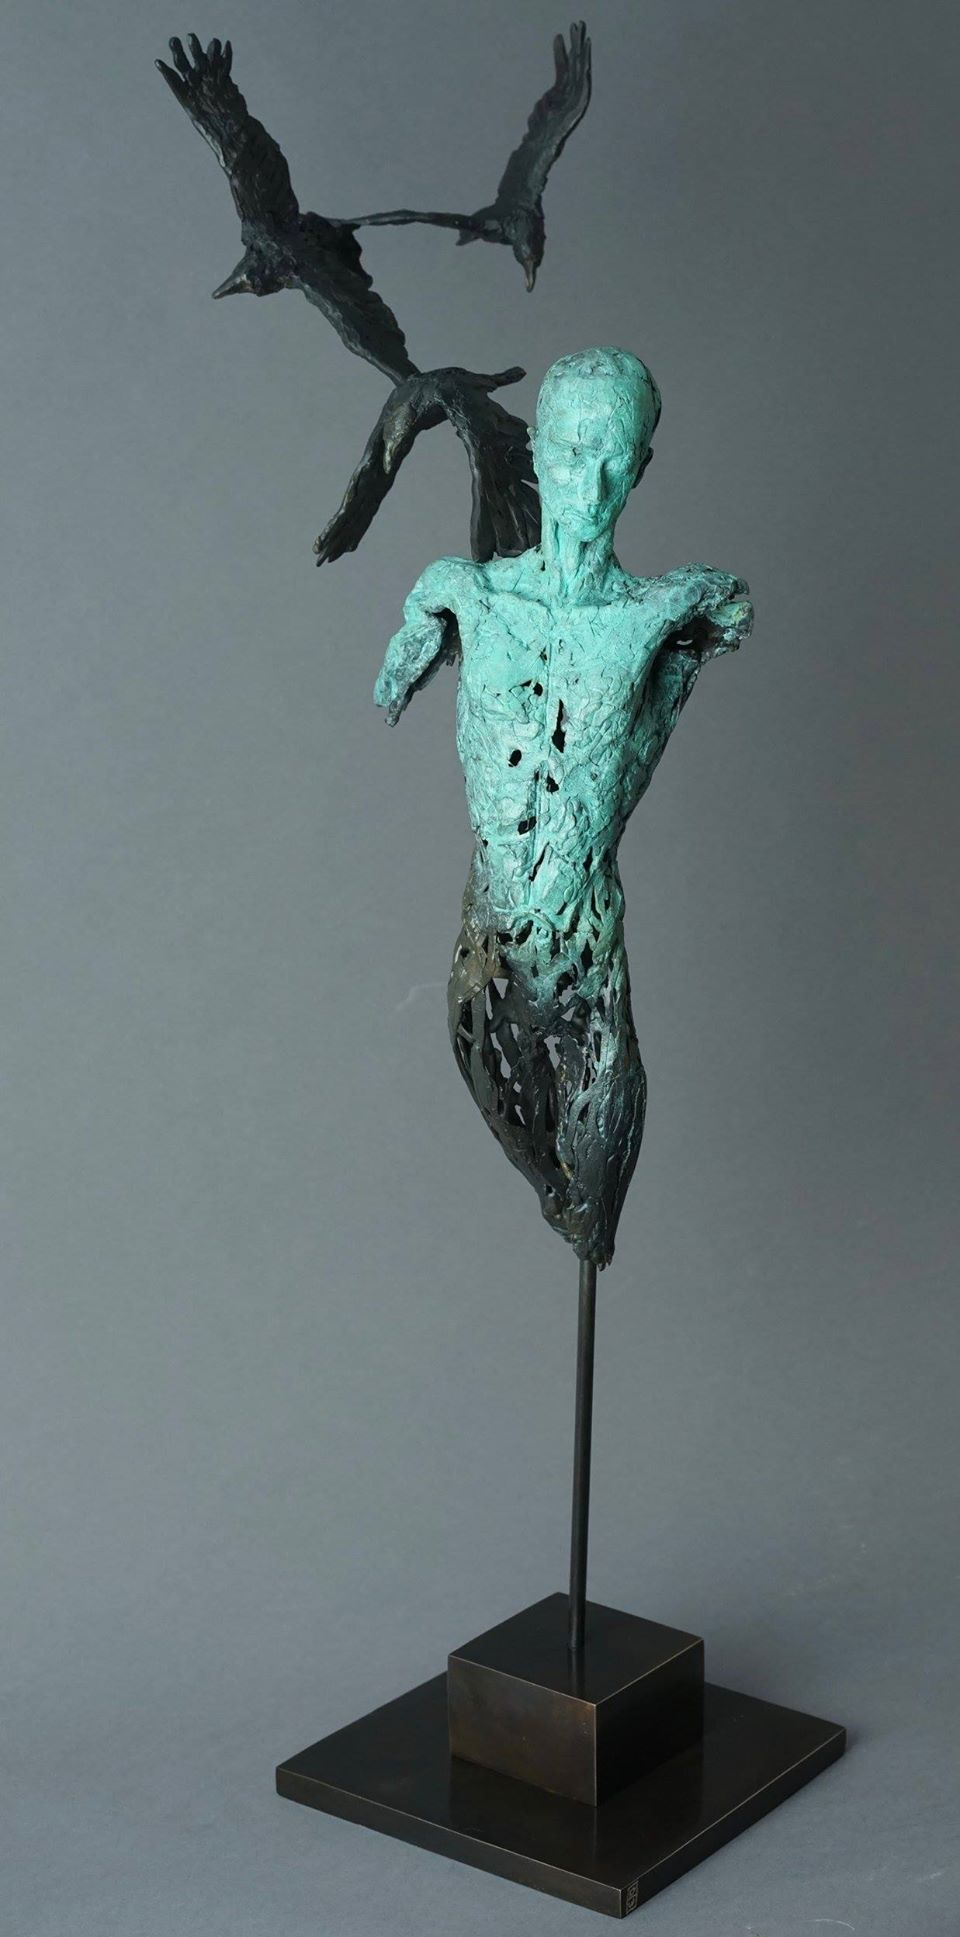 Philip Wakeham - The Raven King